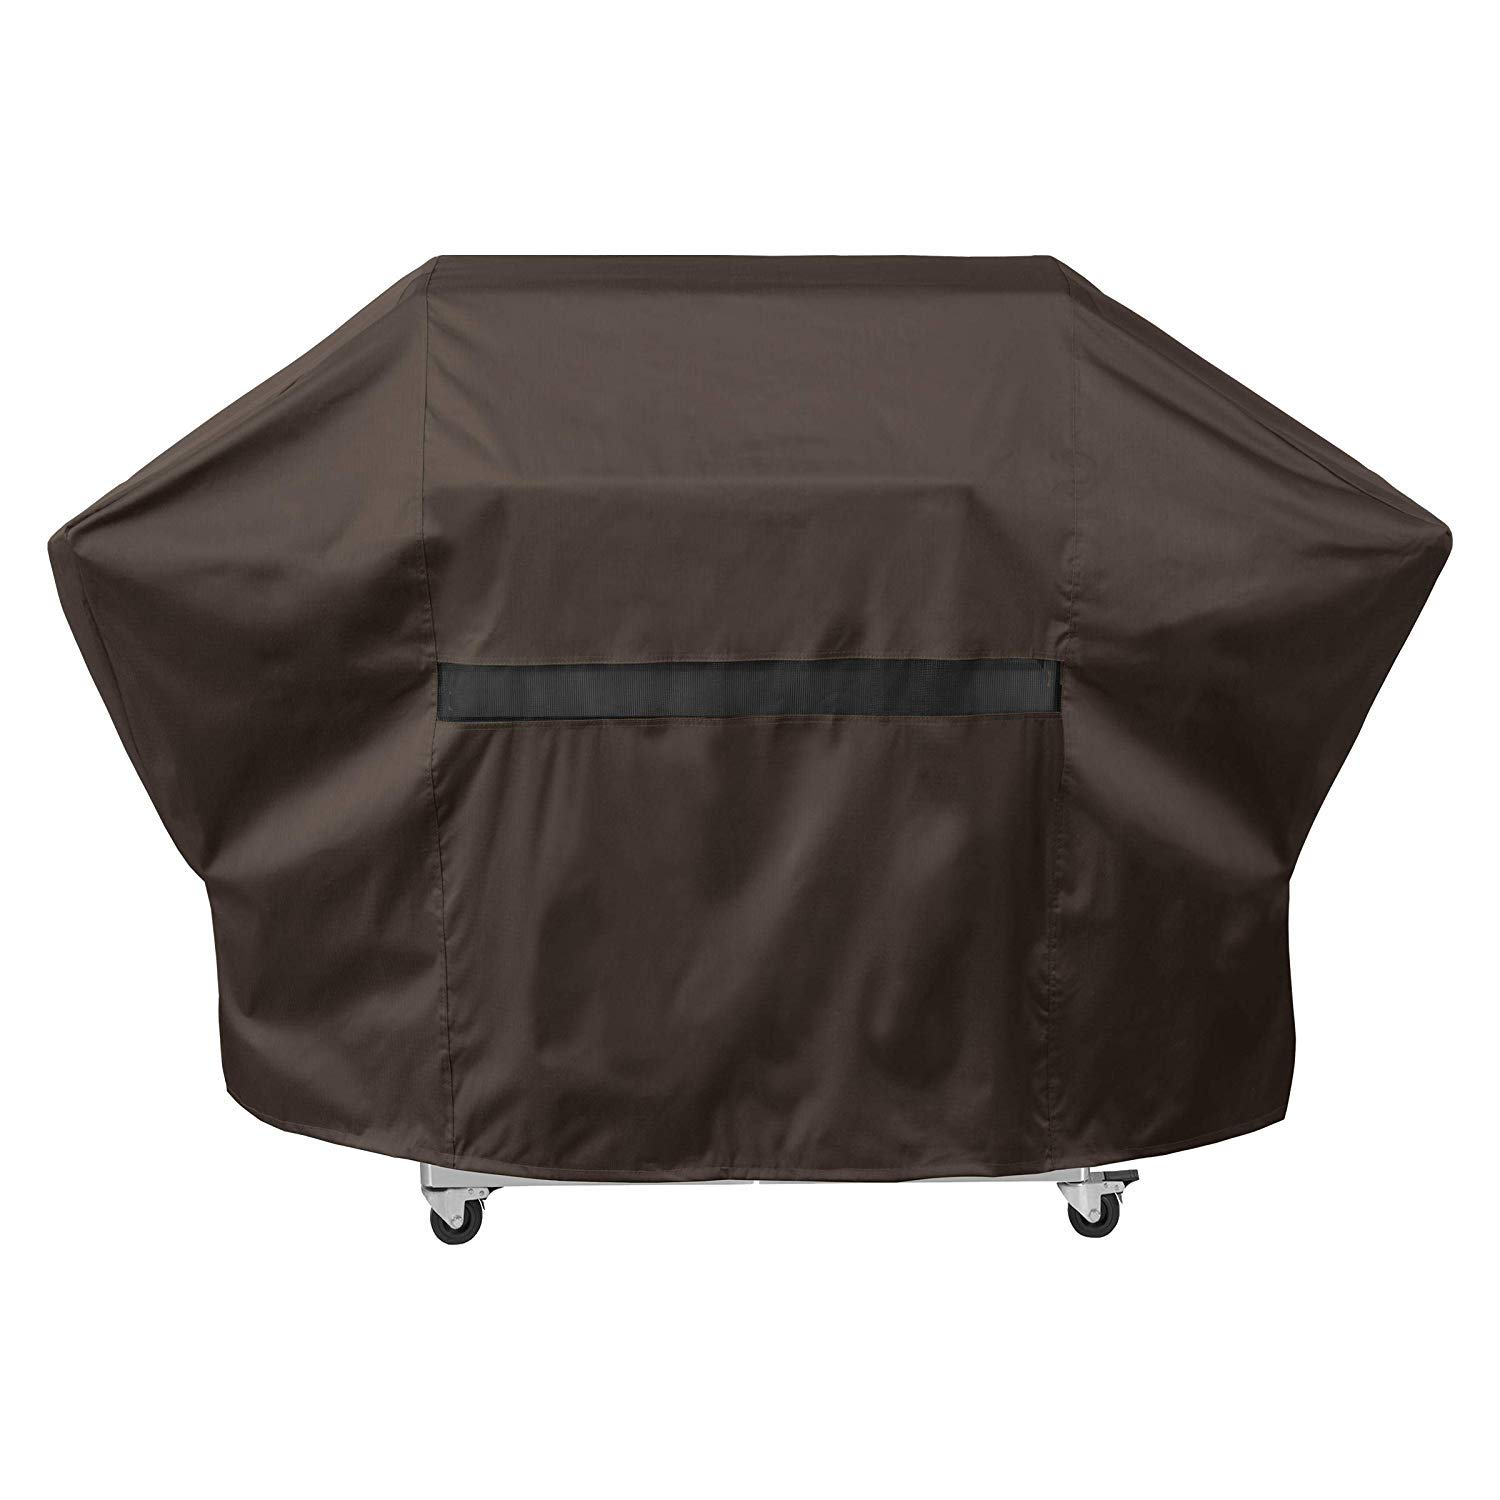 """True Guard Grill Cover Heavy Duty Waterproof - Fits 2-3 Burner Grills, 52"""" 600D Rip-Stop, Fade/Stain/UV Resistant, Dark Brown Outdoor BBQ Grill Cover"""